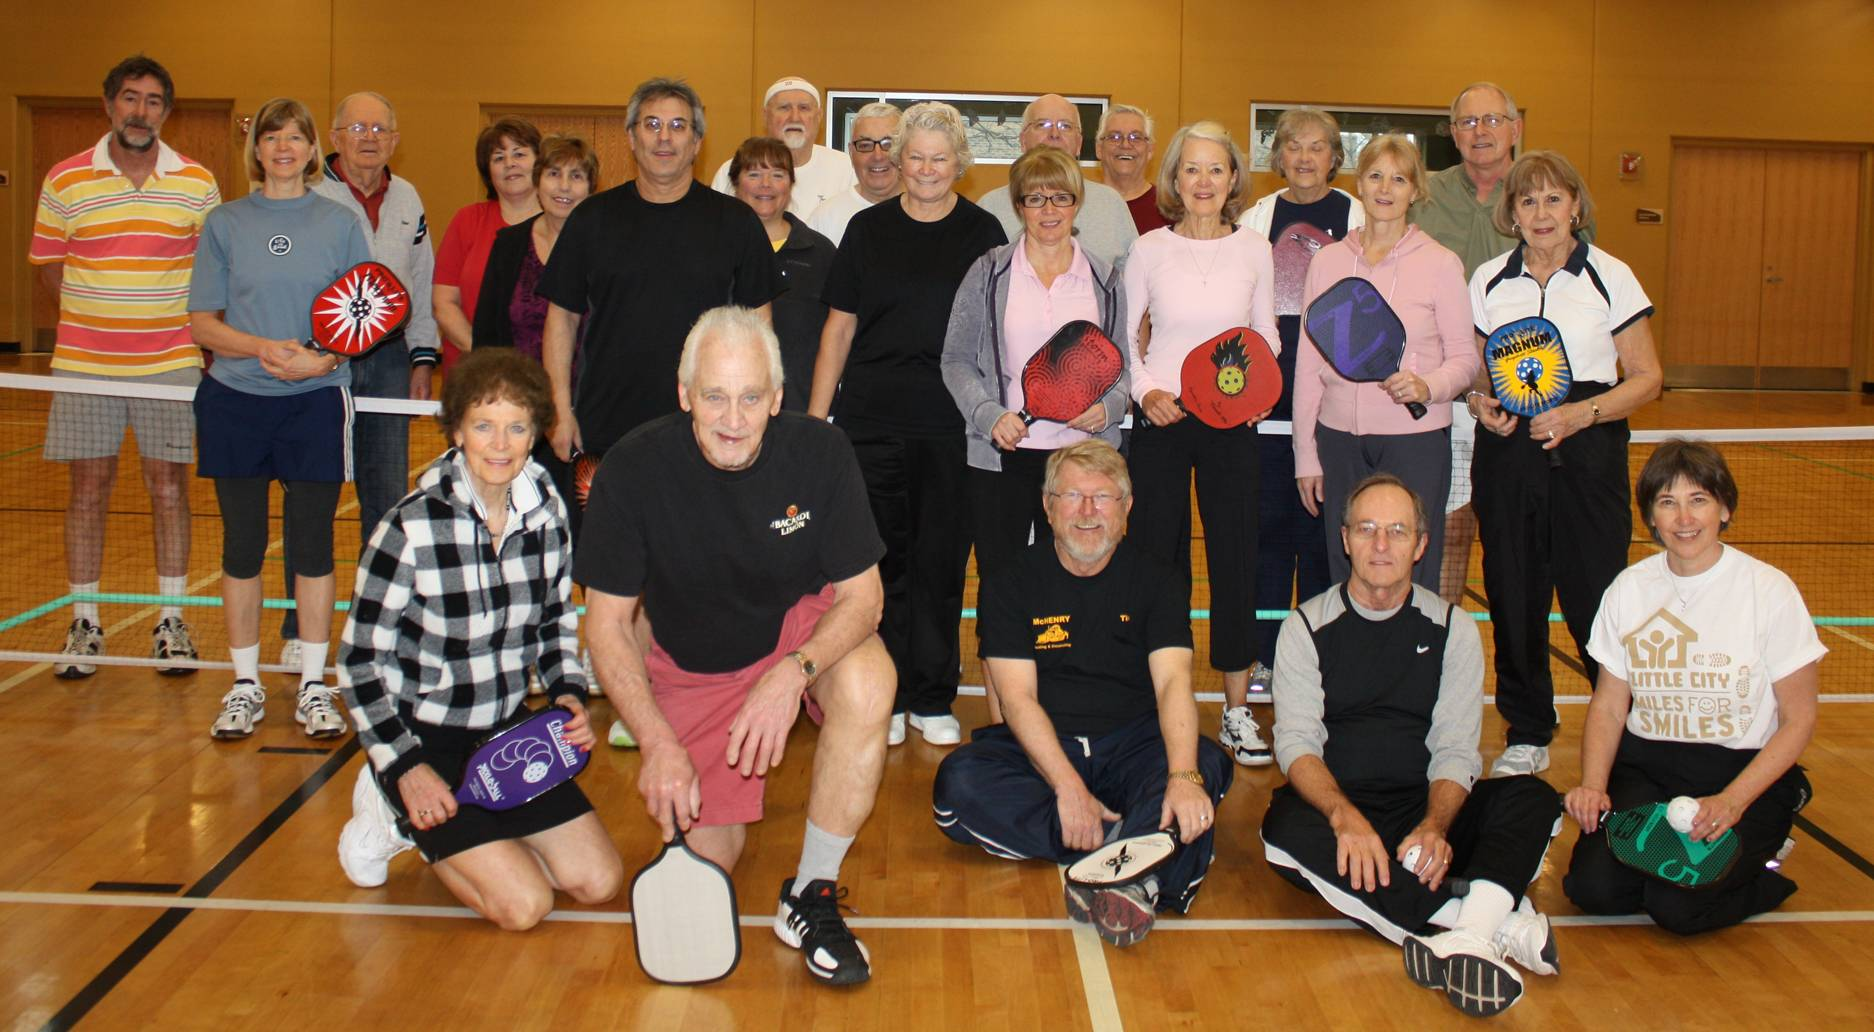 The 50+ Pickleball Group plays on Mondays and Fridays. A new adult group will begin play on Wednesdays as of November 20.